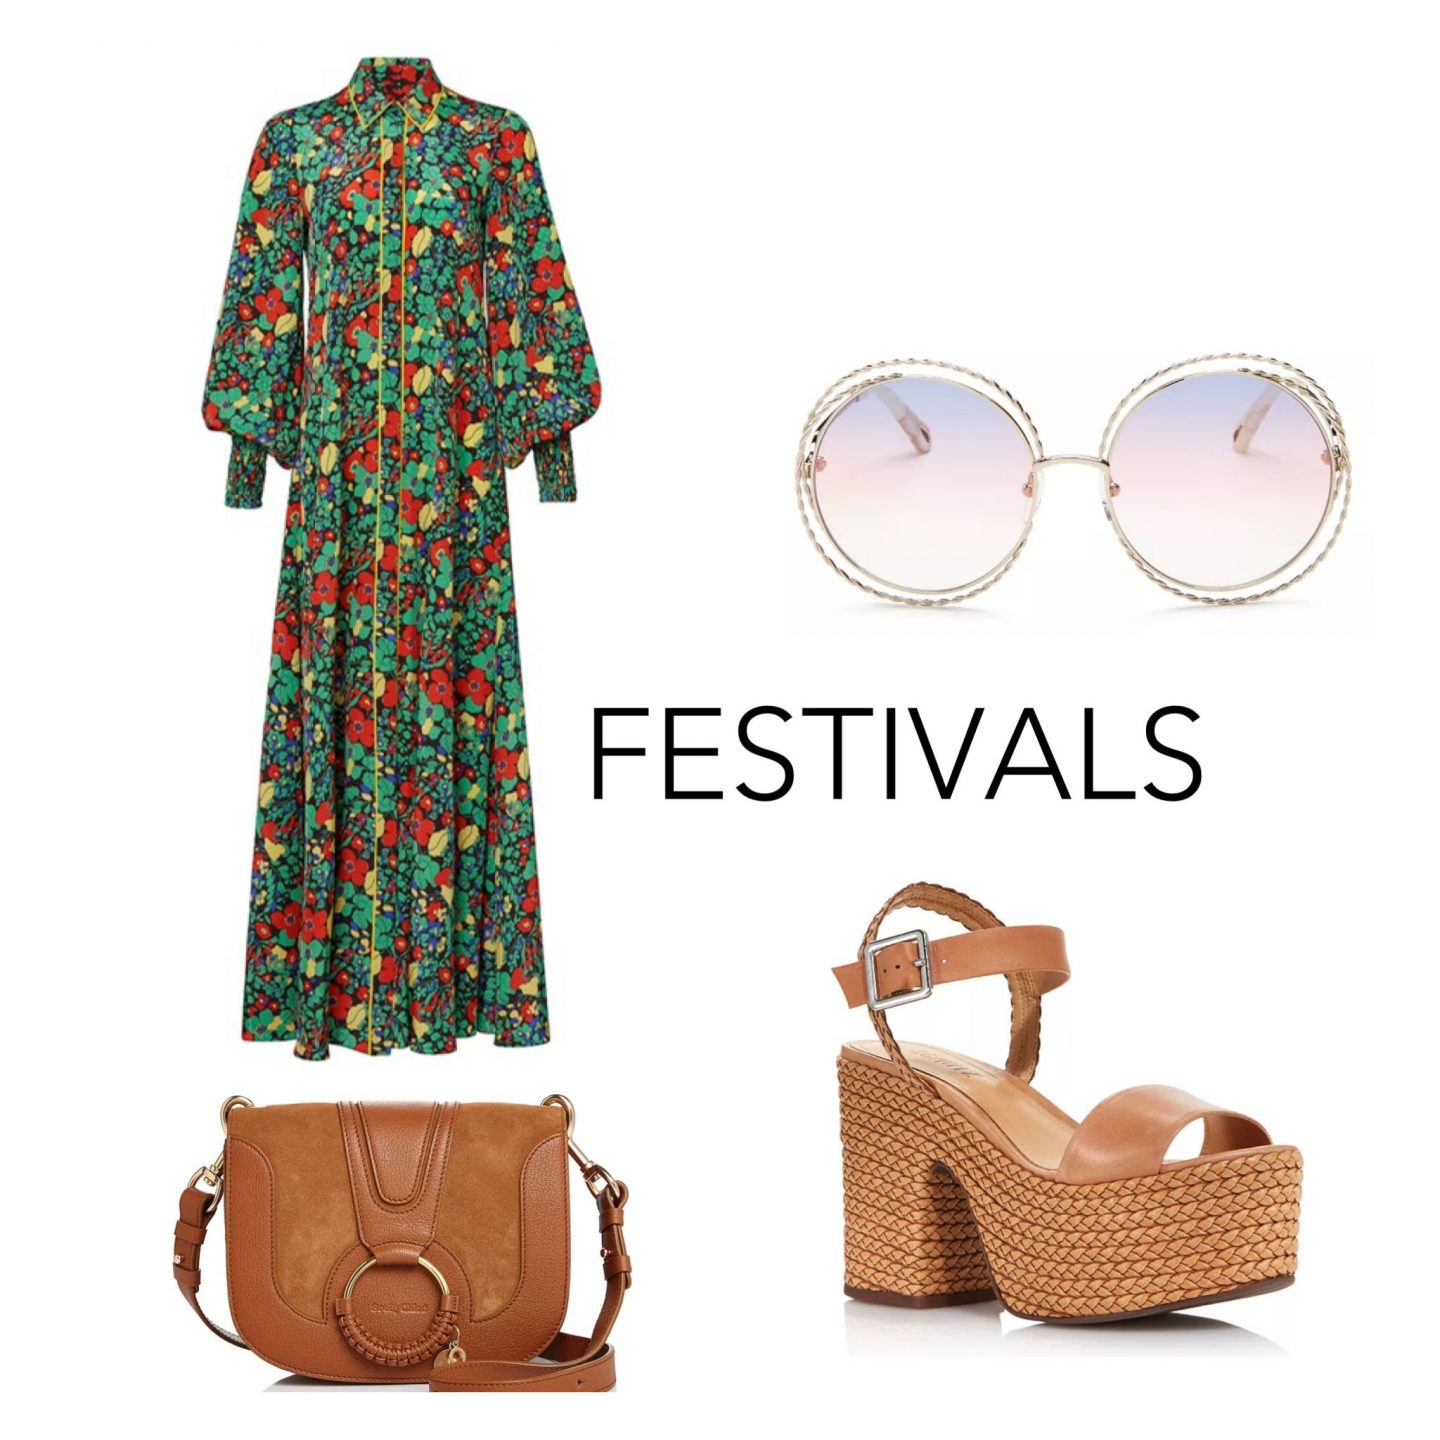 how to style a floral maxi dress for a festival, chloe cross body bag, shuzt brown platform sandals, chloe round sunglasses